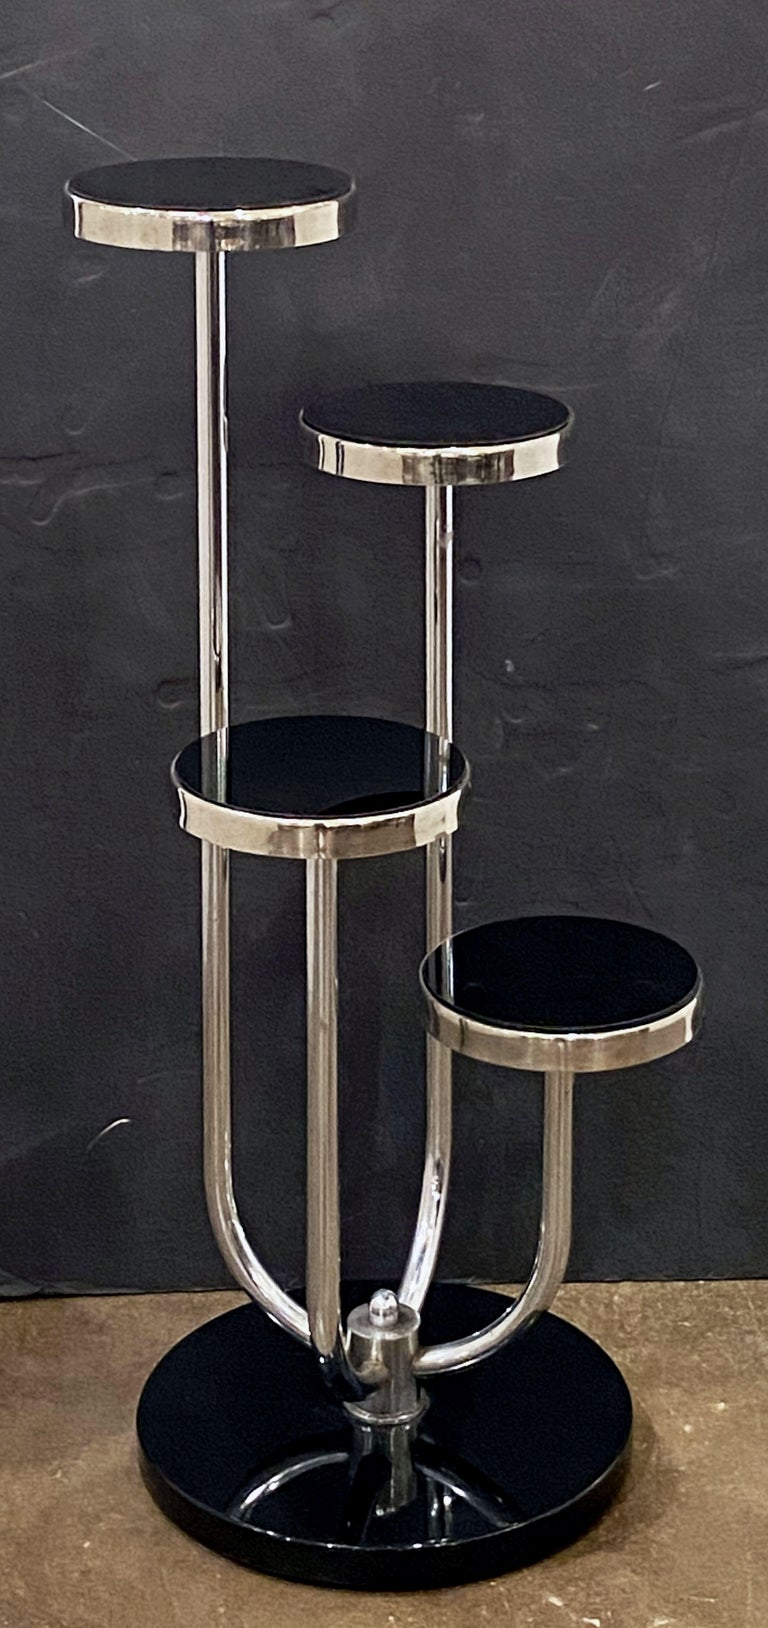 Pair of Czech Art Deco Étagères of Chrome and Smoked Glass 'Priced Individually' For Sale 2